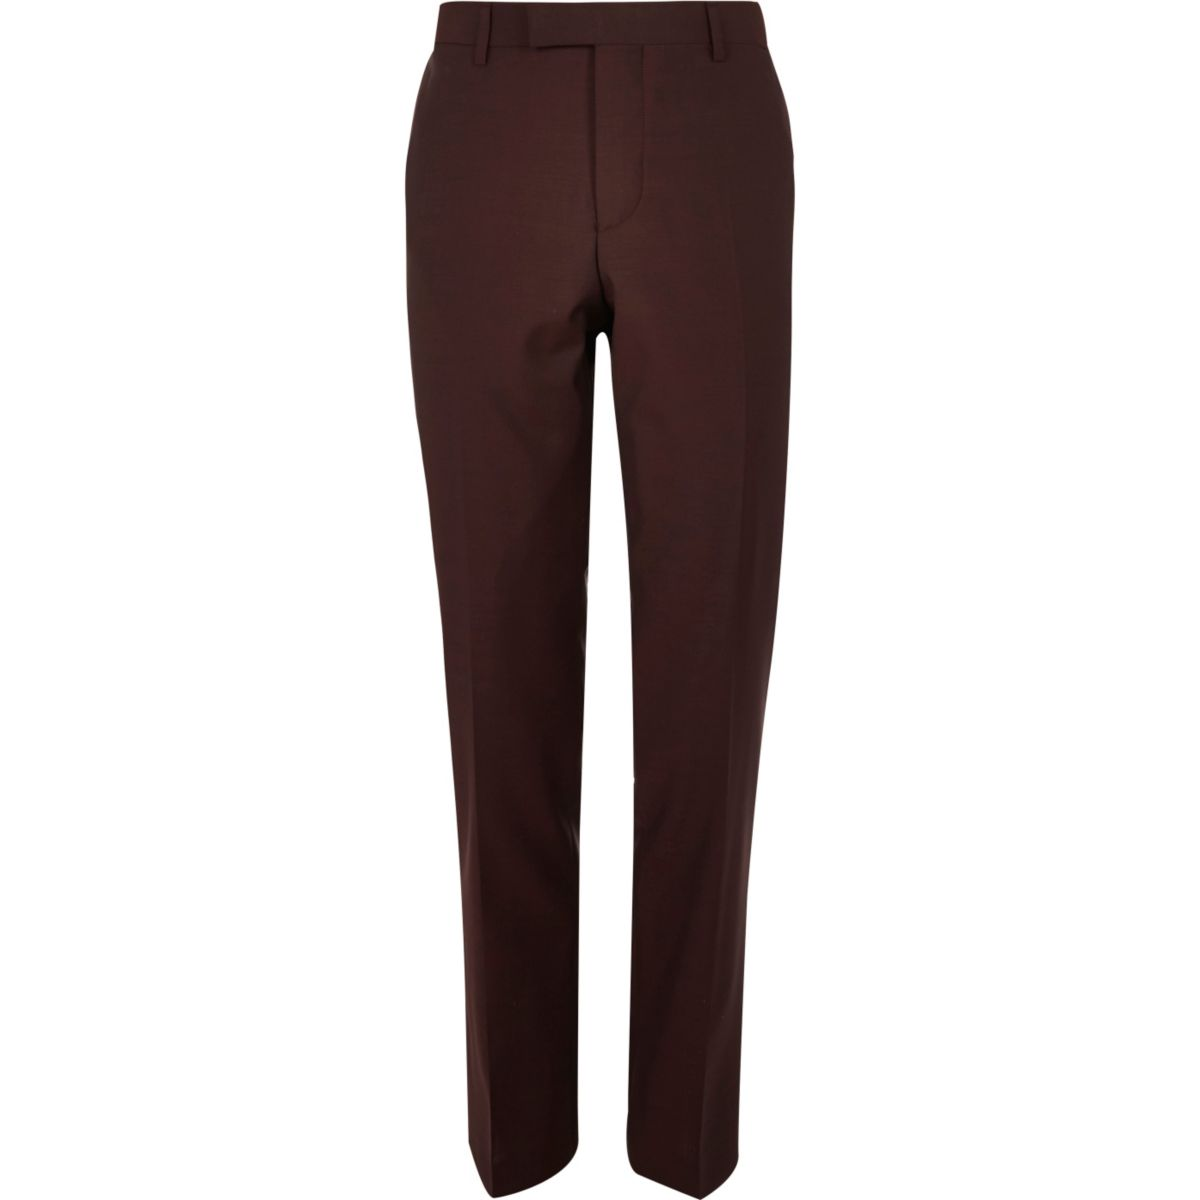 Pantalon de costume slim rouge baie